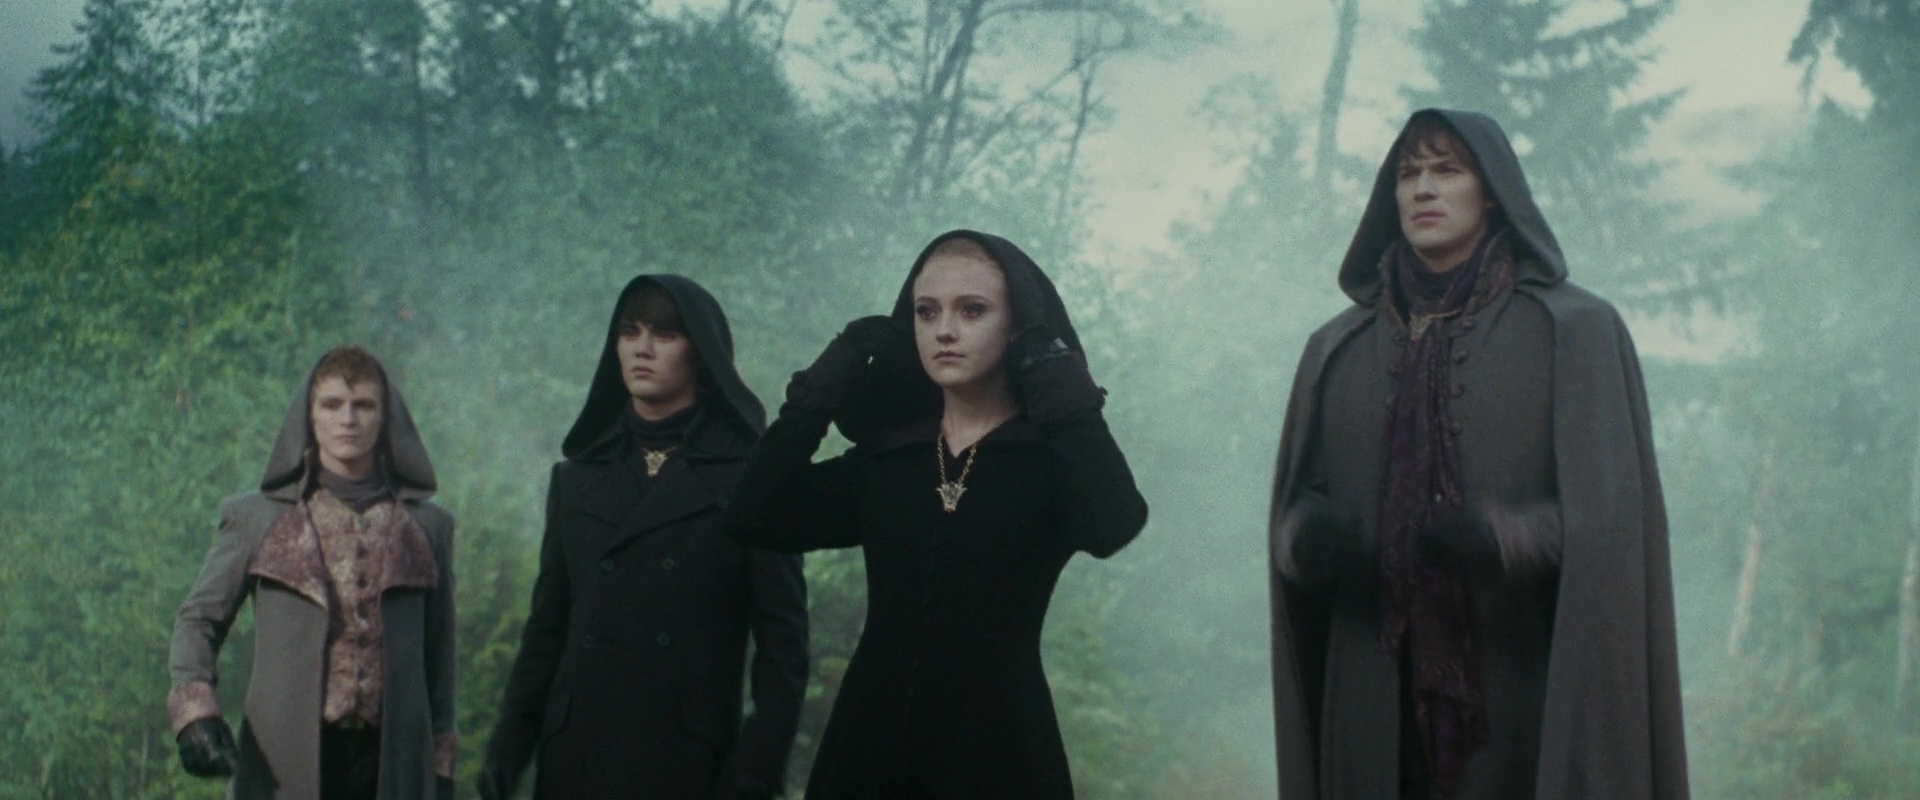 File:The volturi eclipse.jpg